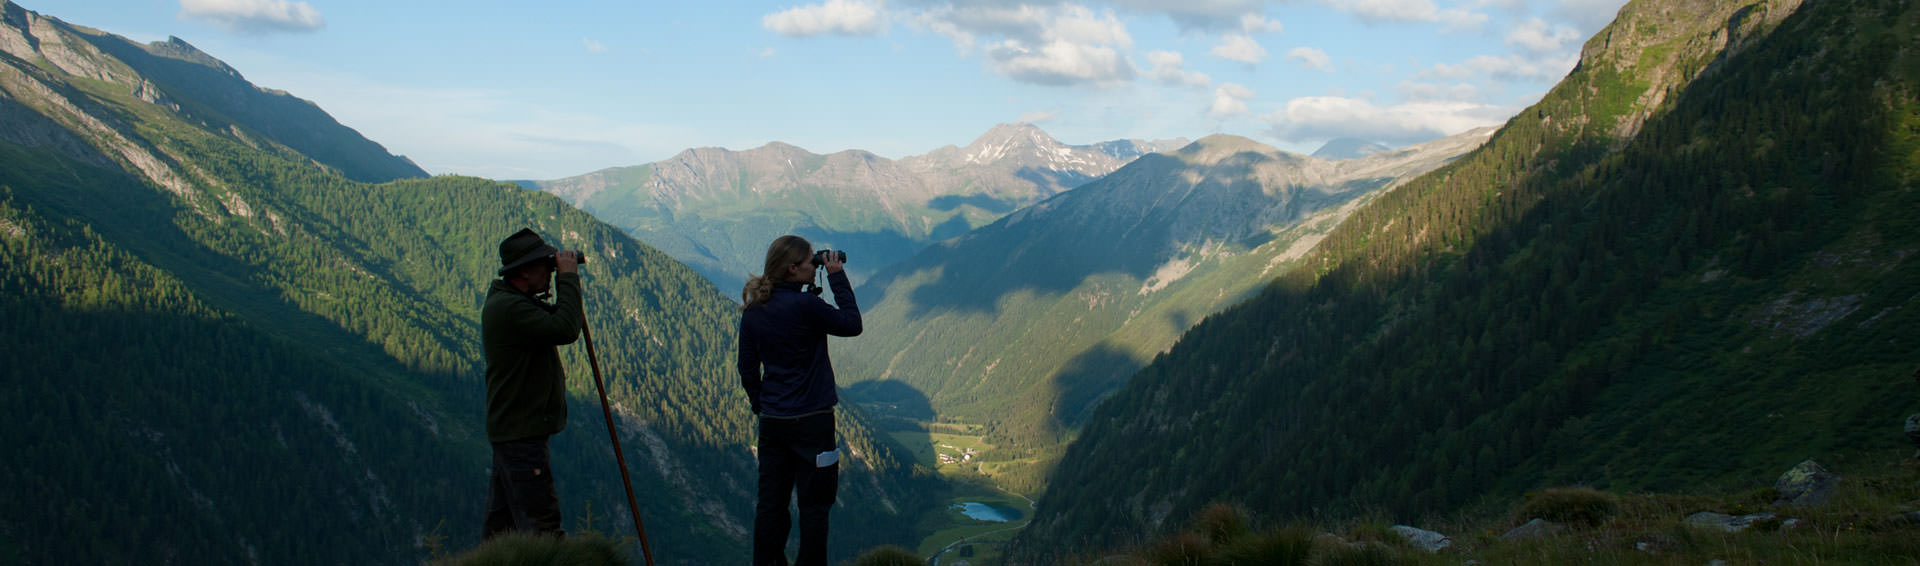 Hikers with binoculars in the mountains